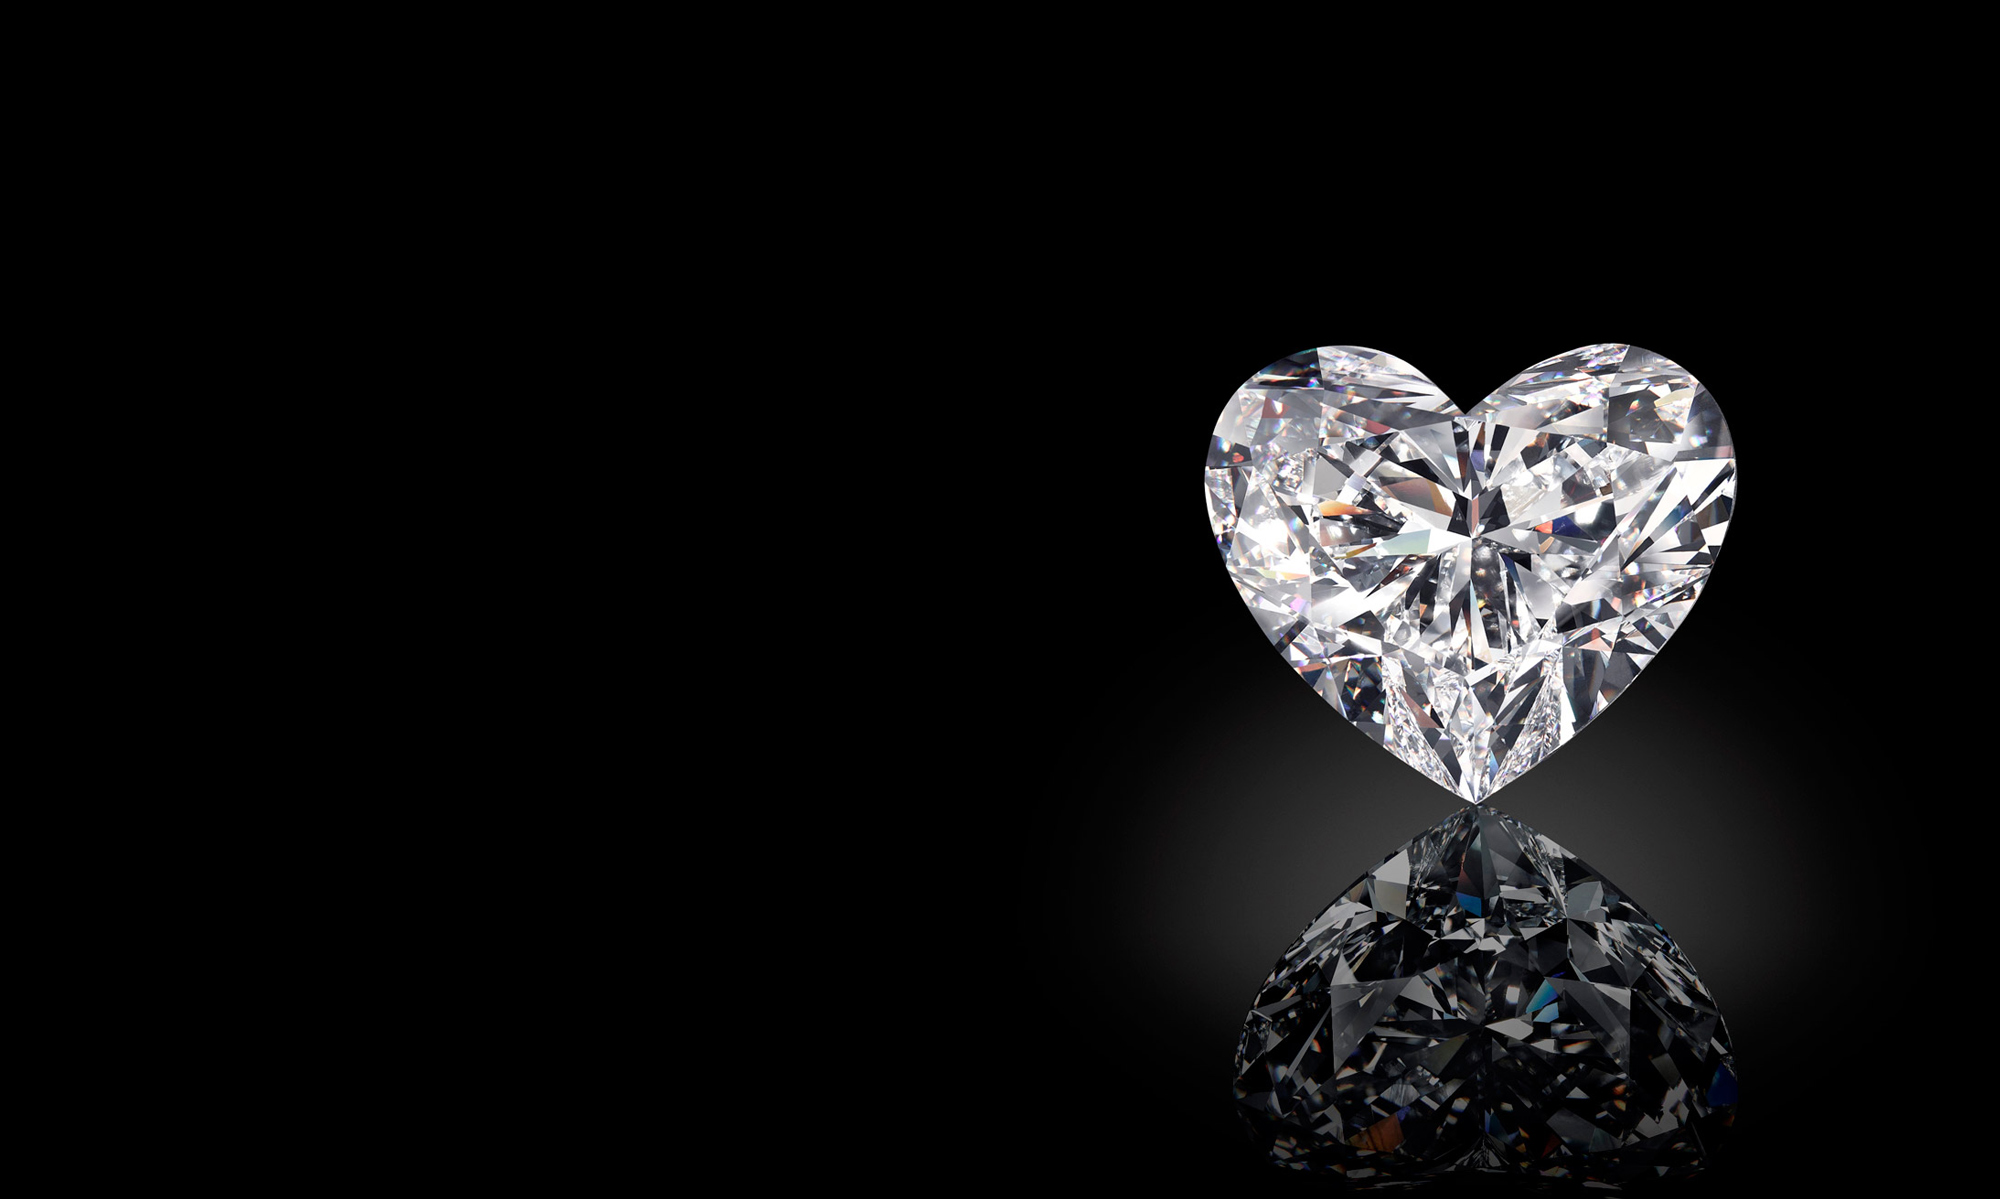 products dianoche diamond heart carat d vs shape g gia diamonds cut